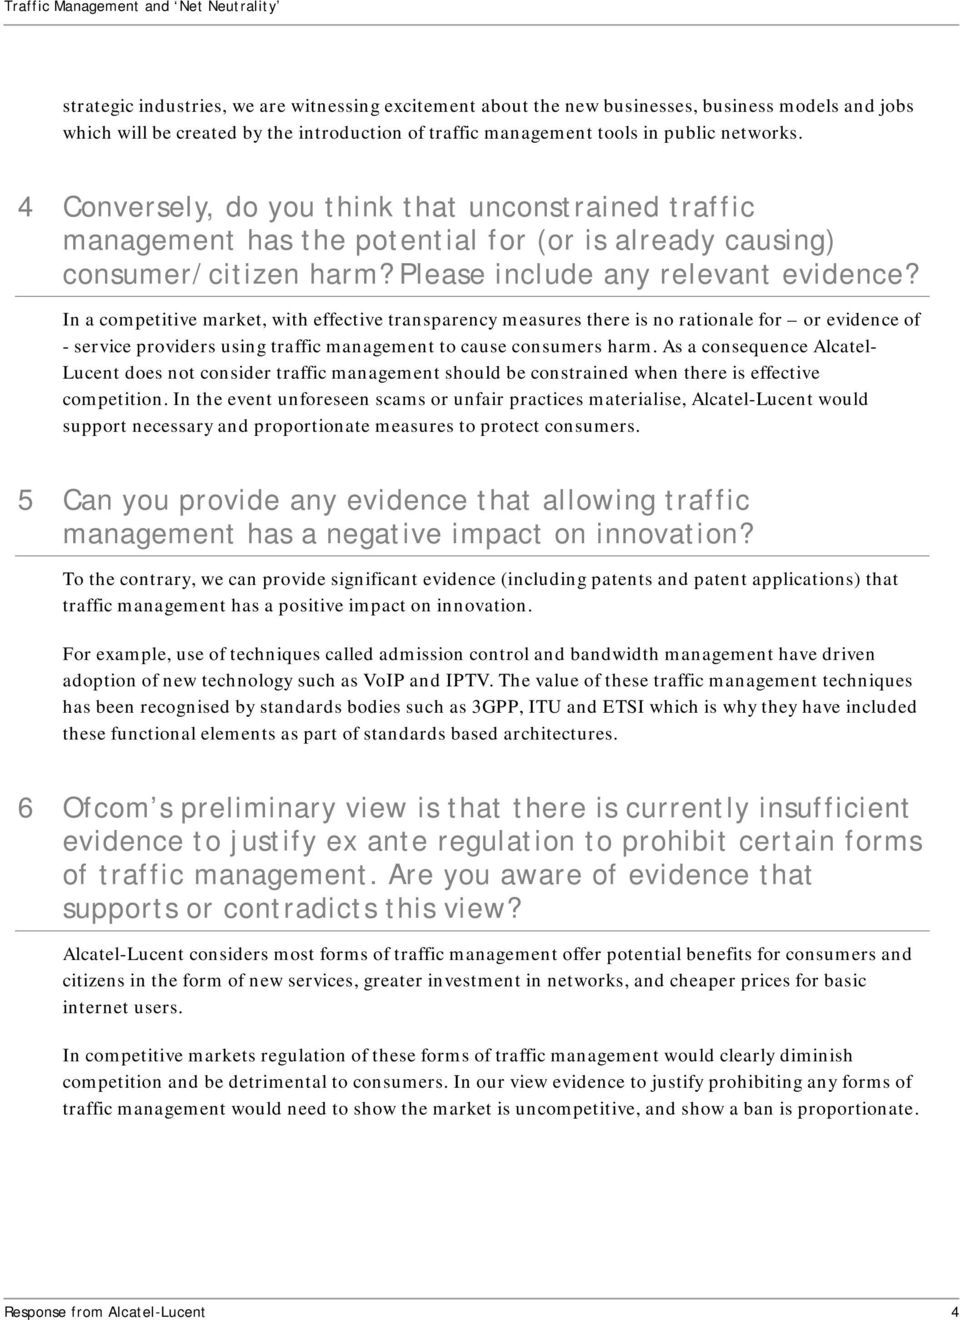 In a competitive market, with effective transparency measures there is no rationale for or evidence of - service providers using traffic management to cause consumers harm.